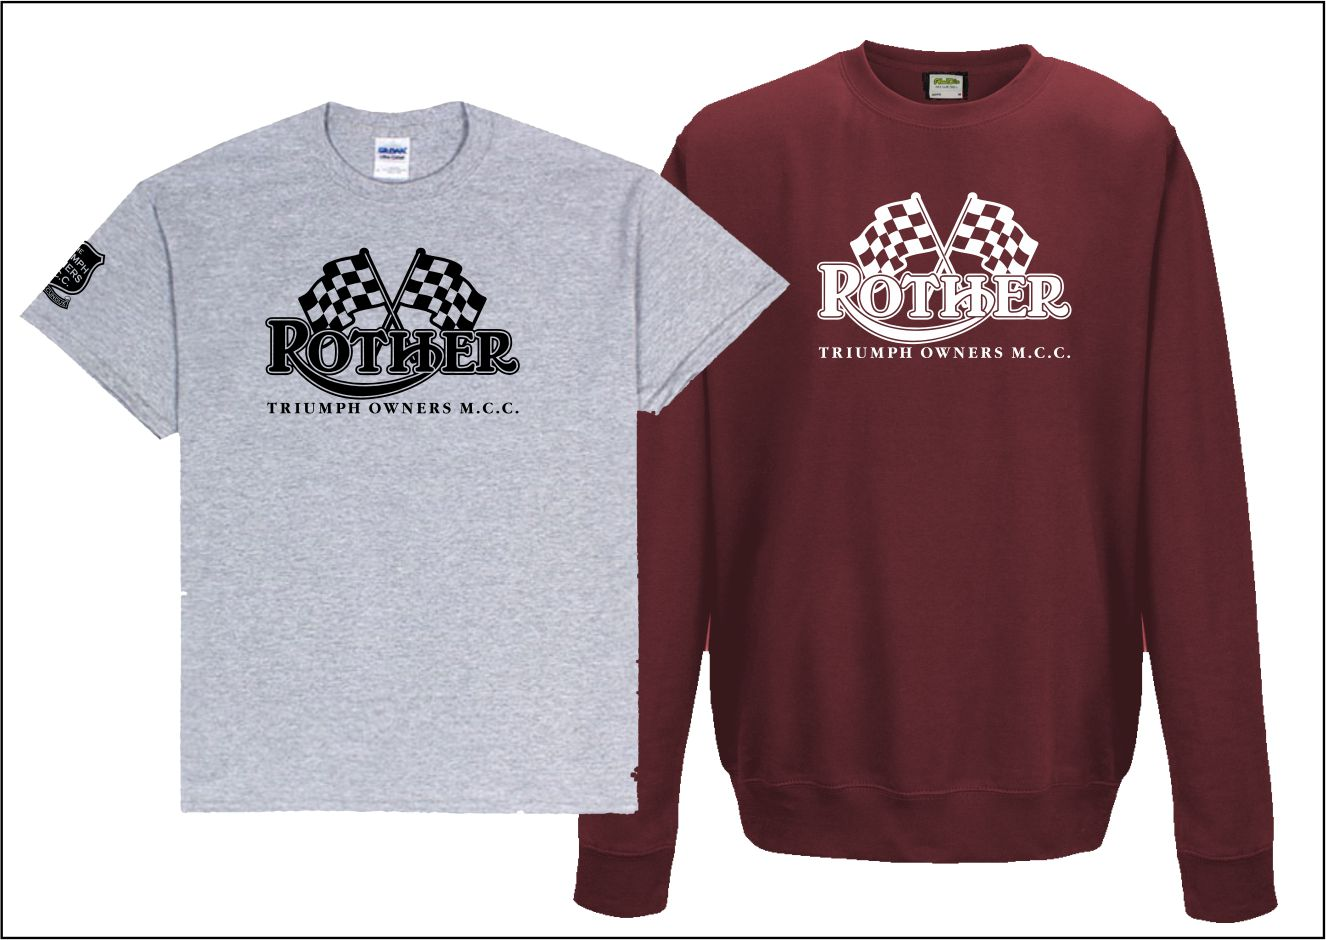 Rother merchandise